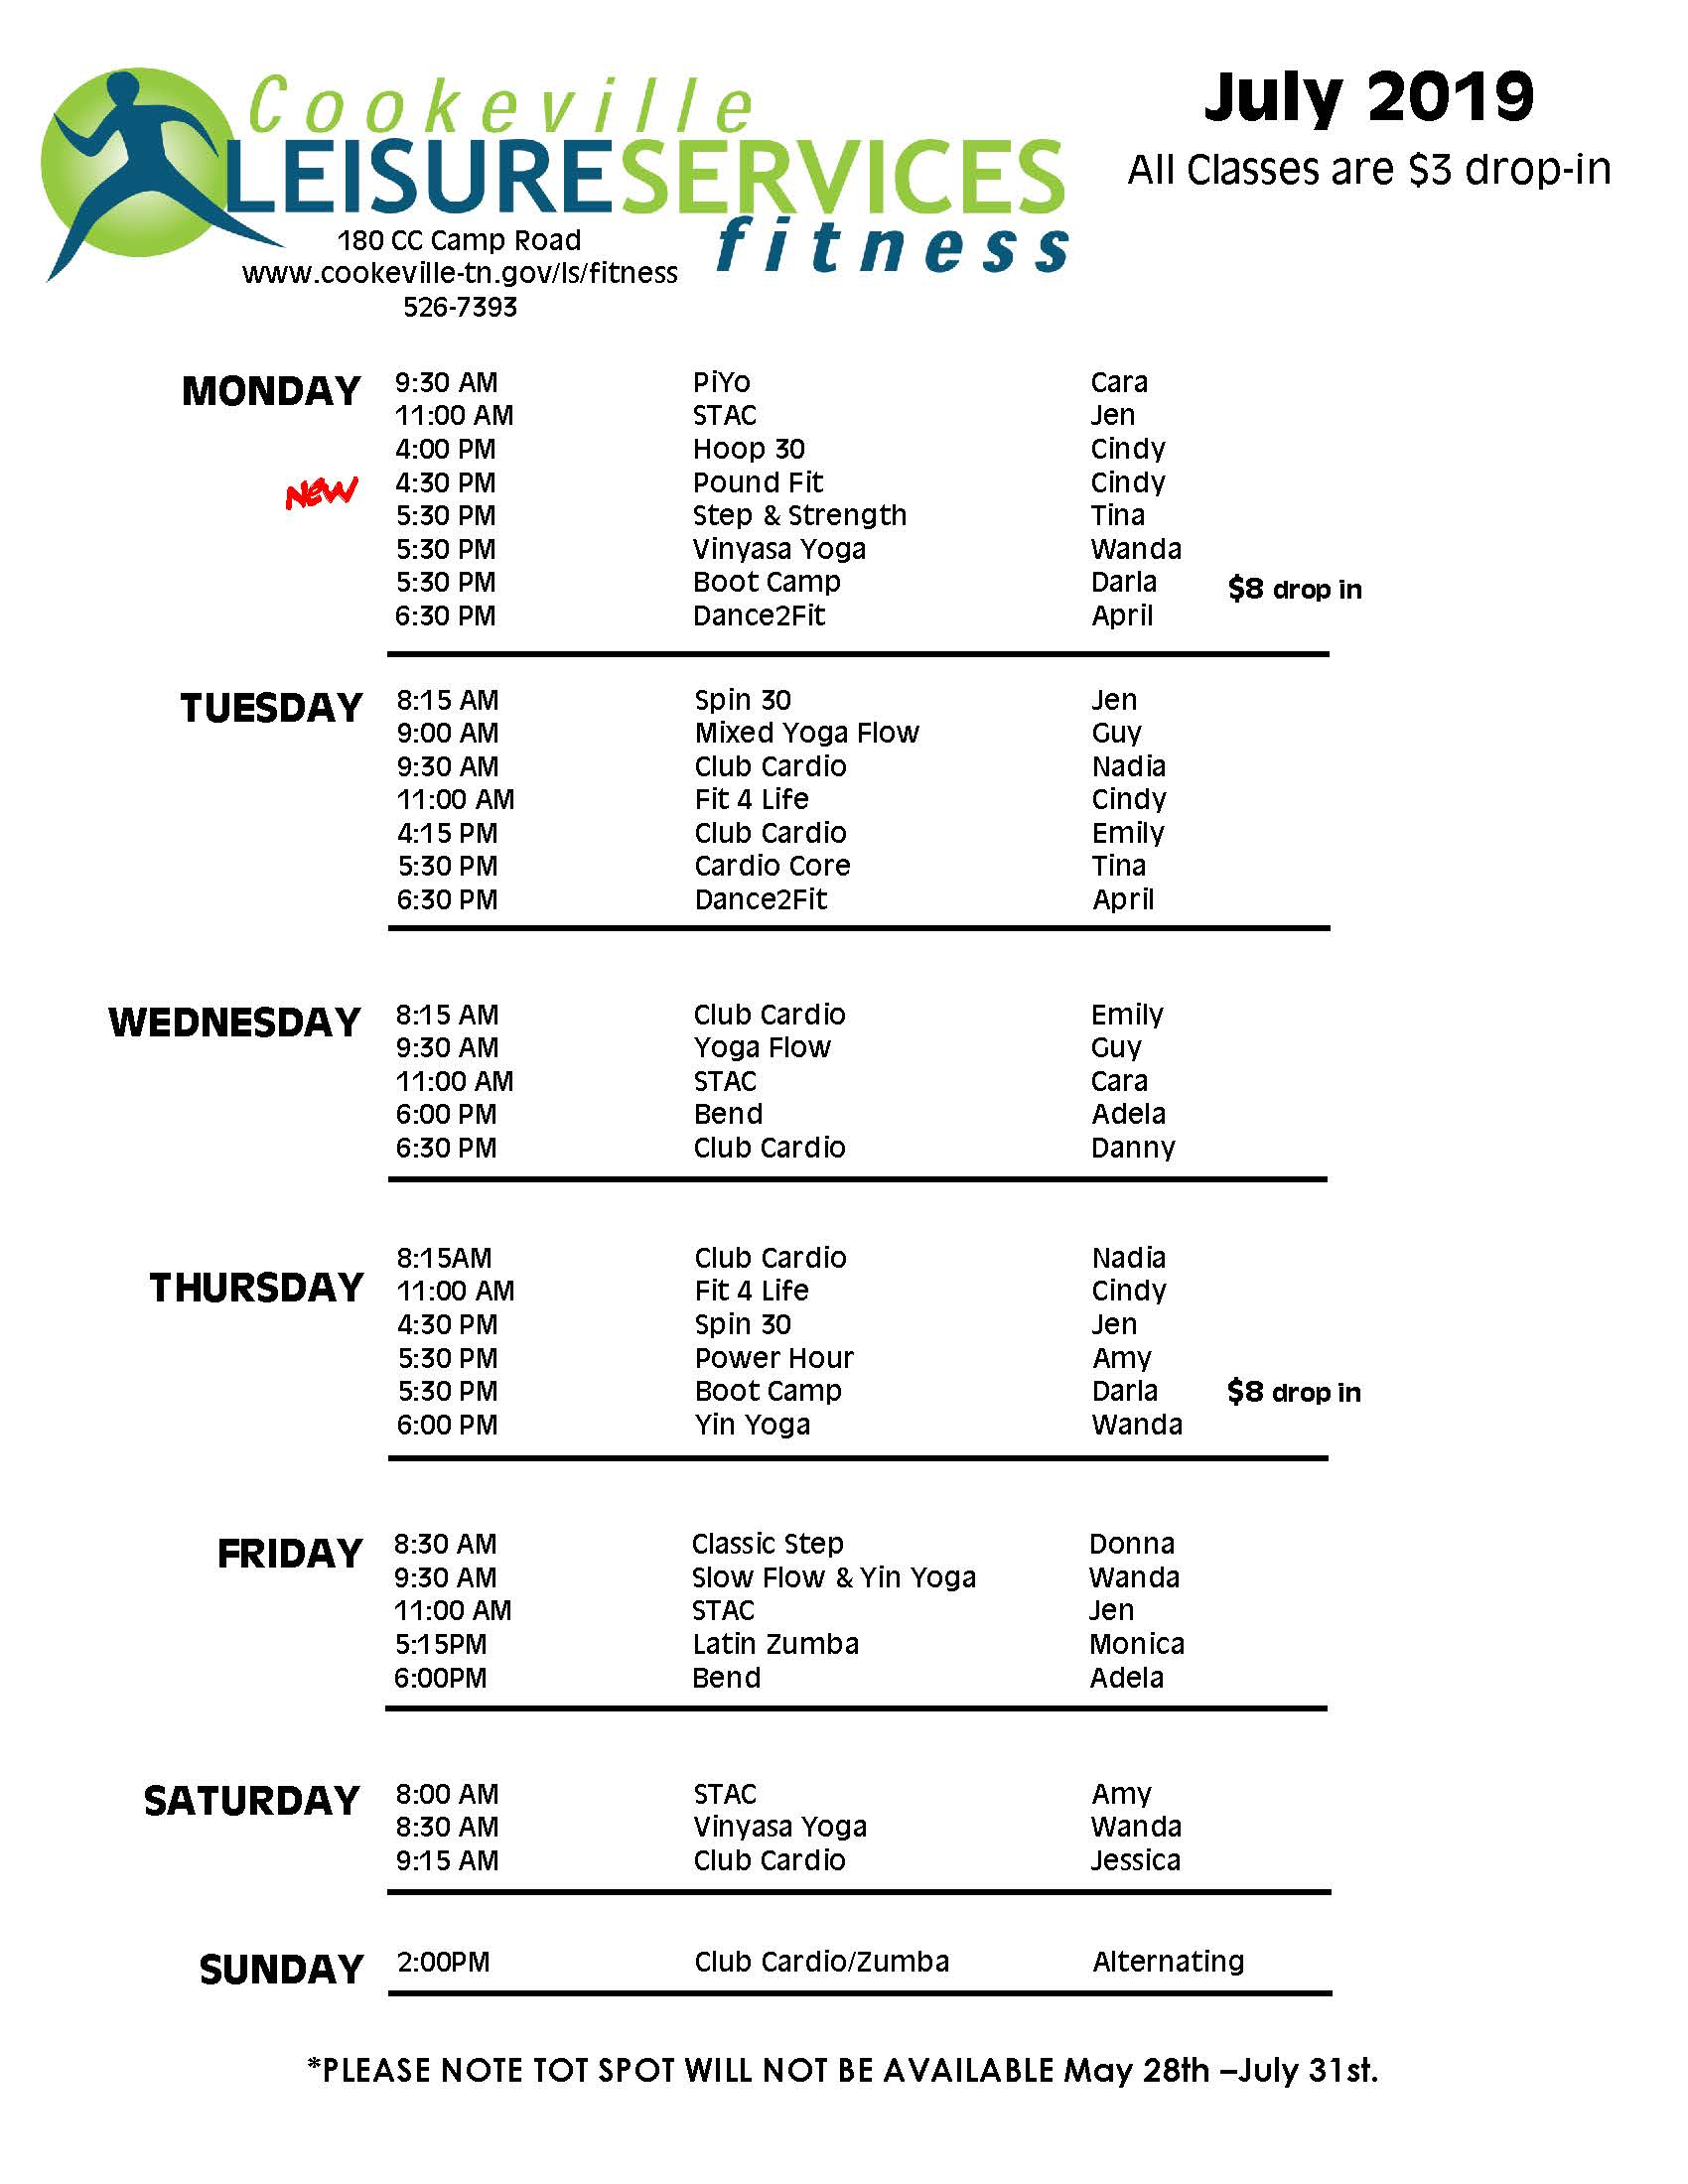 July fitness schedule